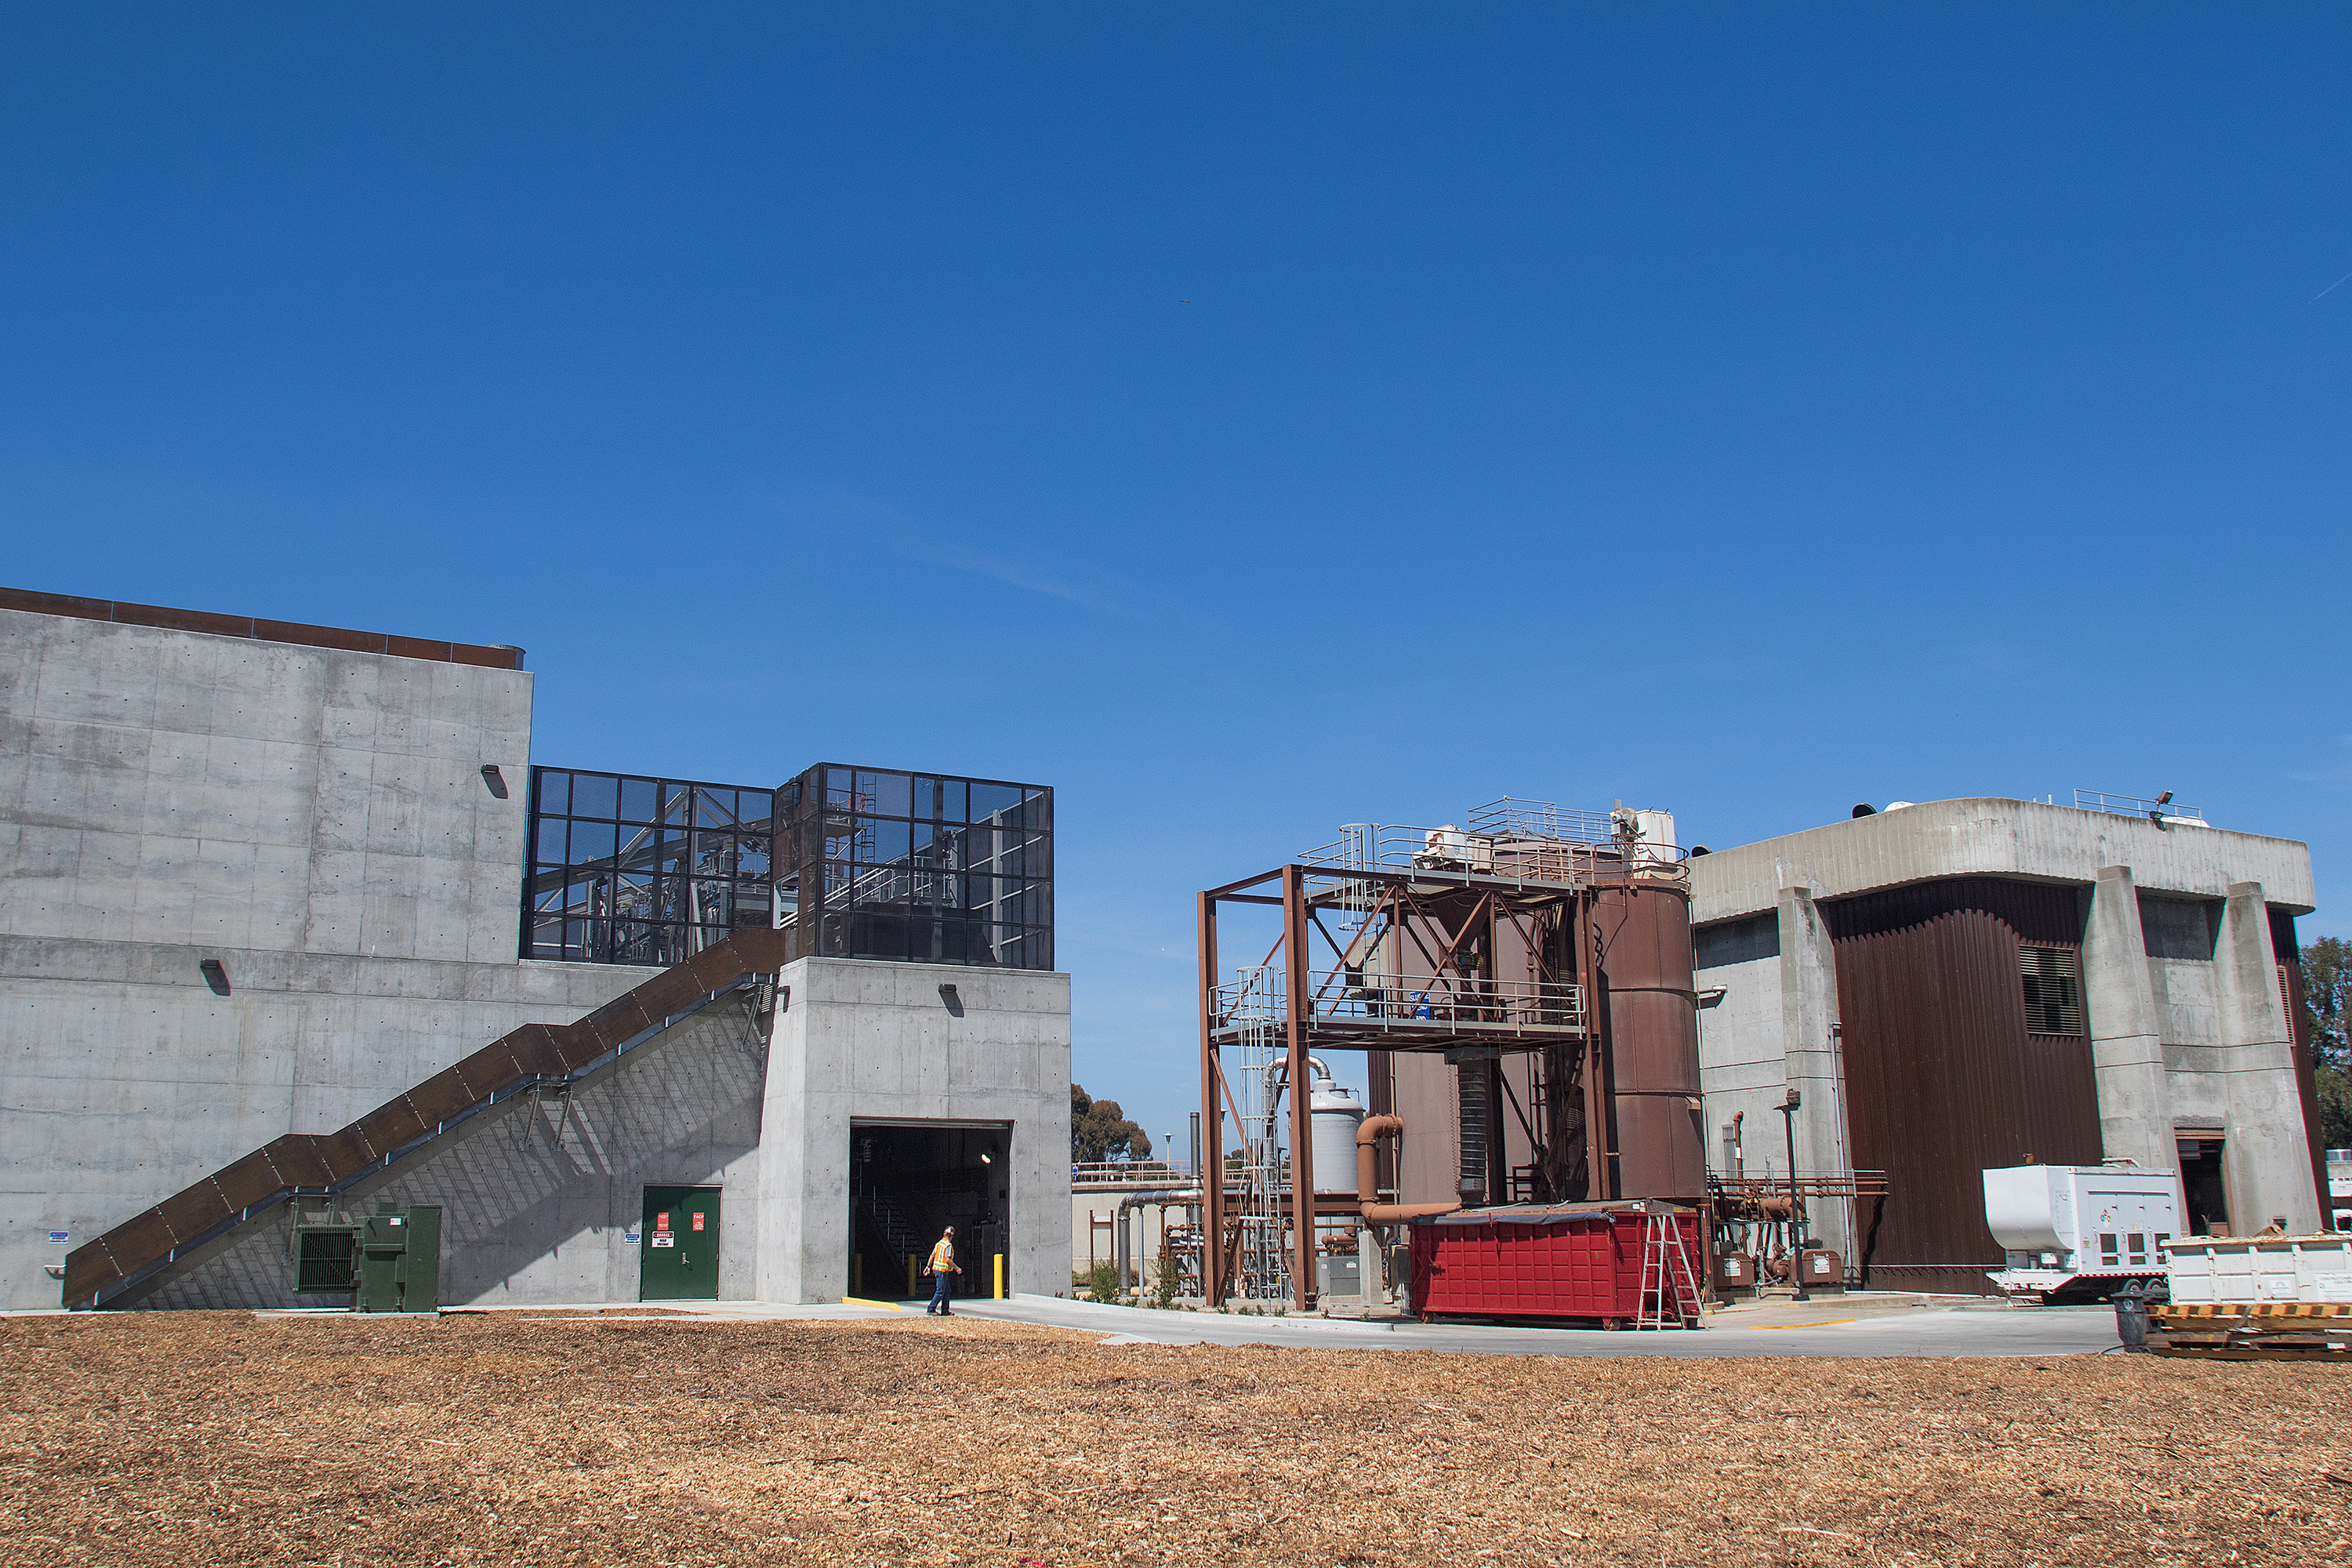 The city of Palo Alto opened its new sludge dewatering building, left, and retired the former incinerator building, right, in June. Photo by Veronica Weber.